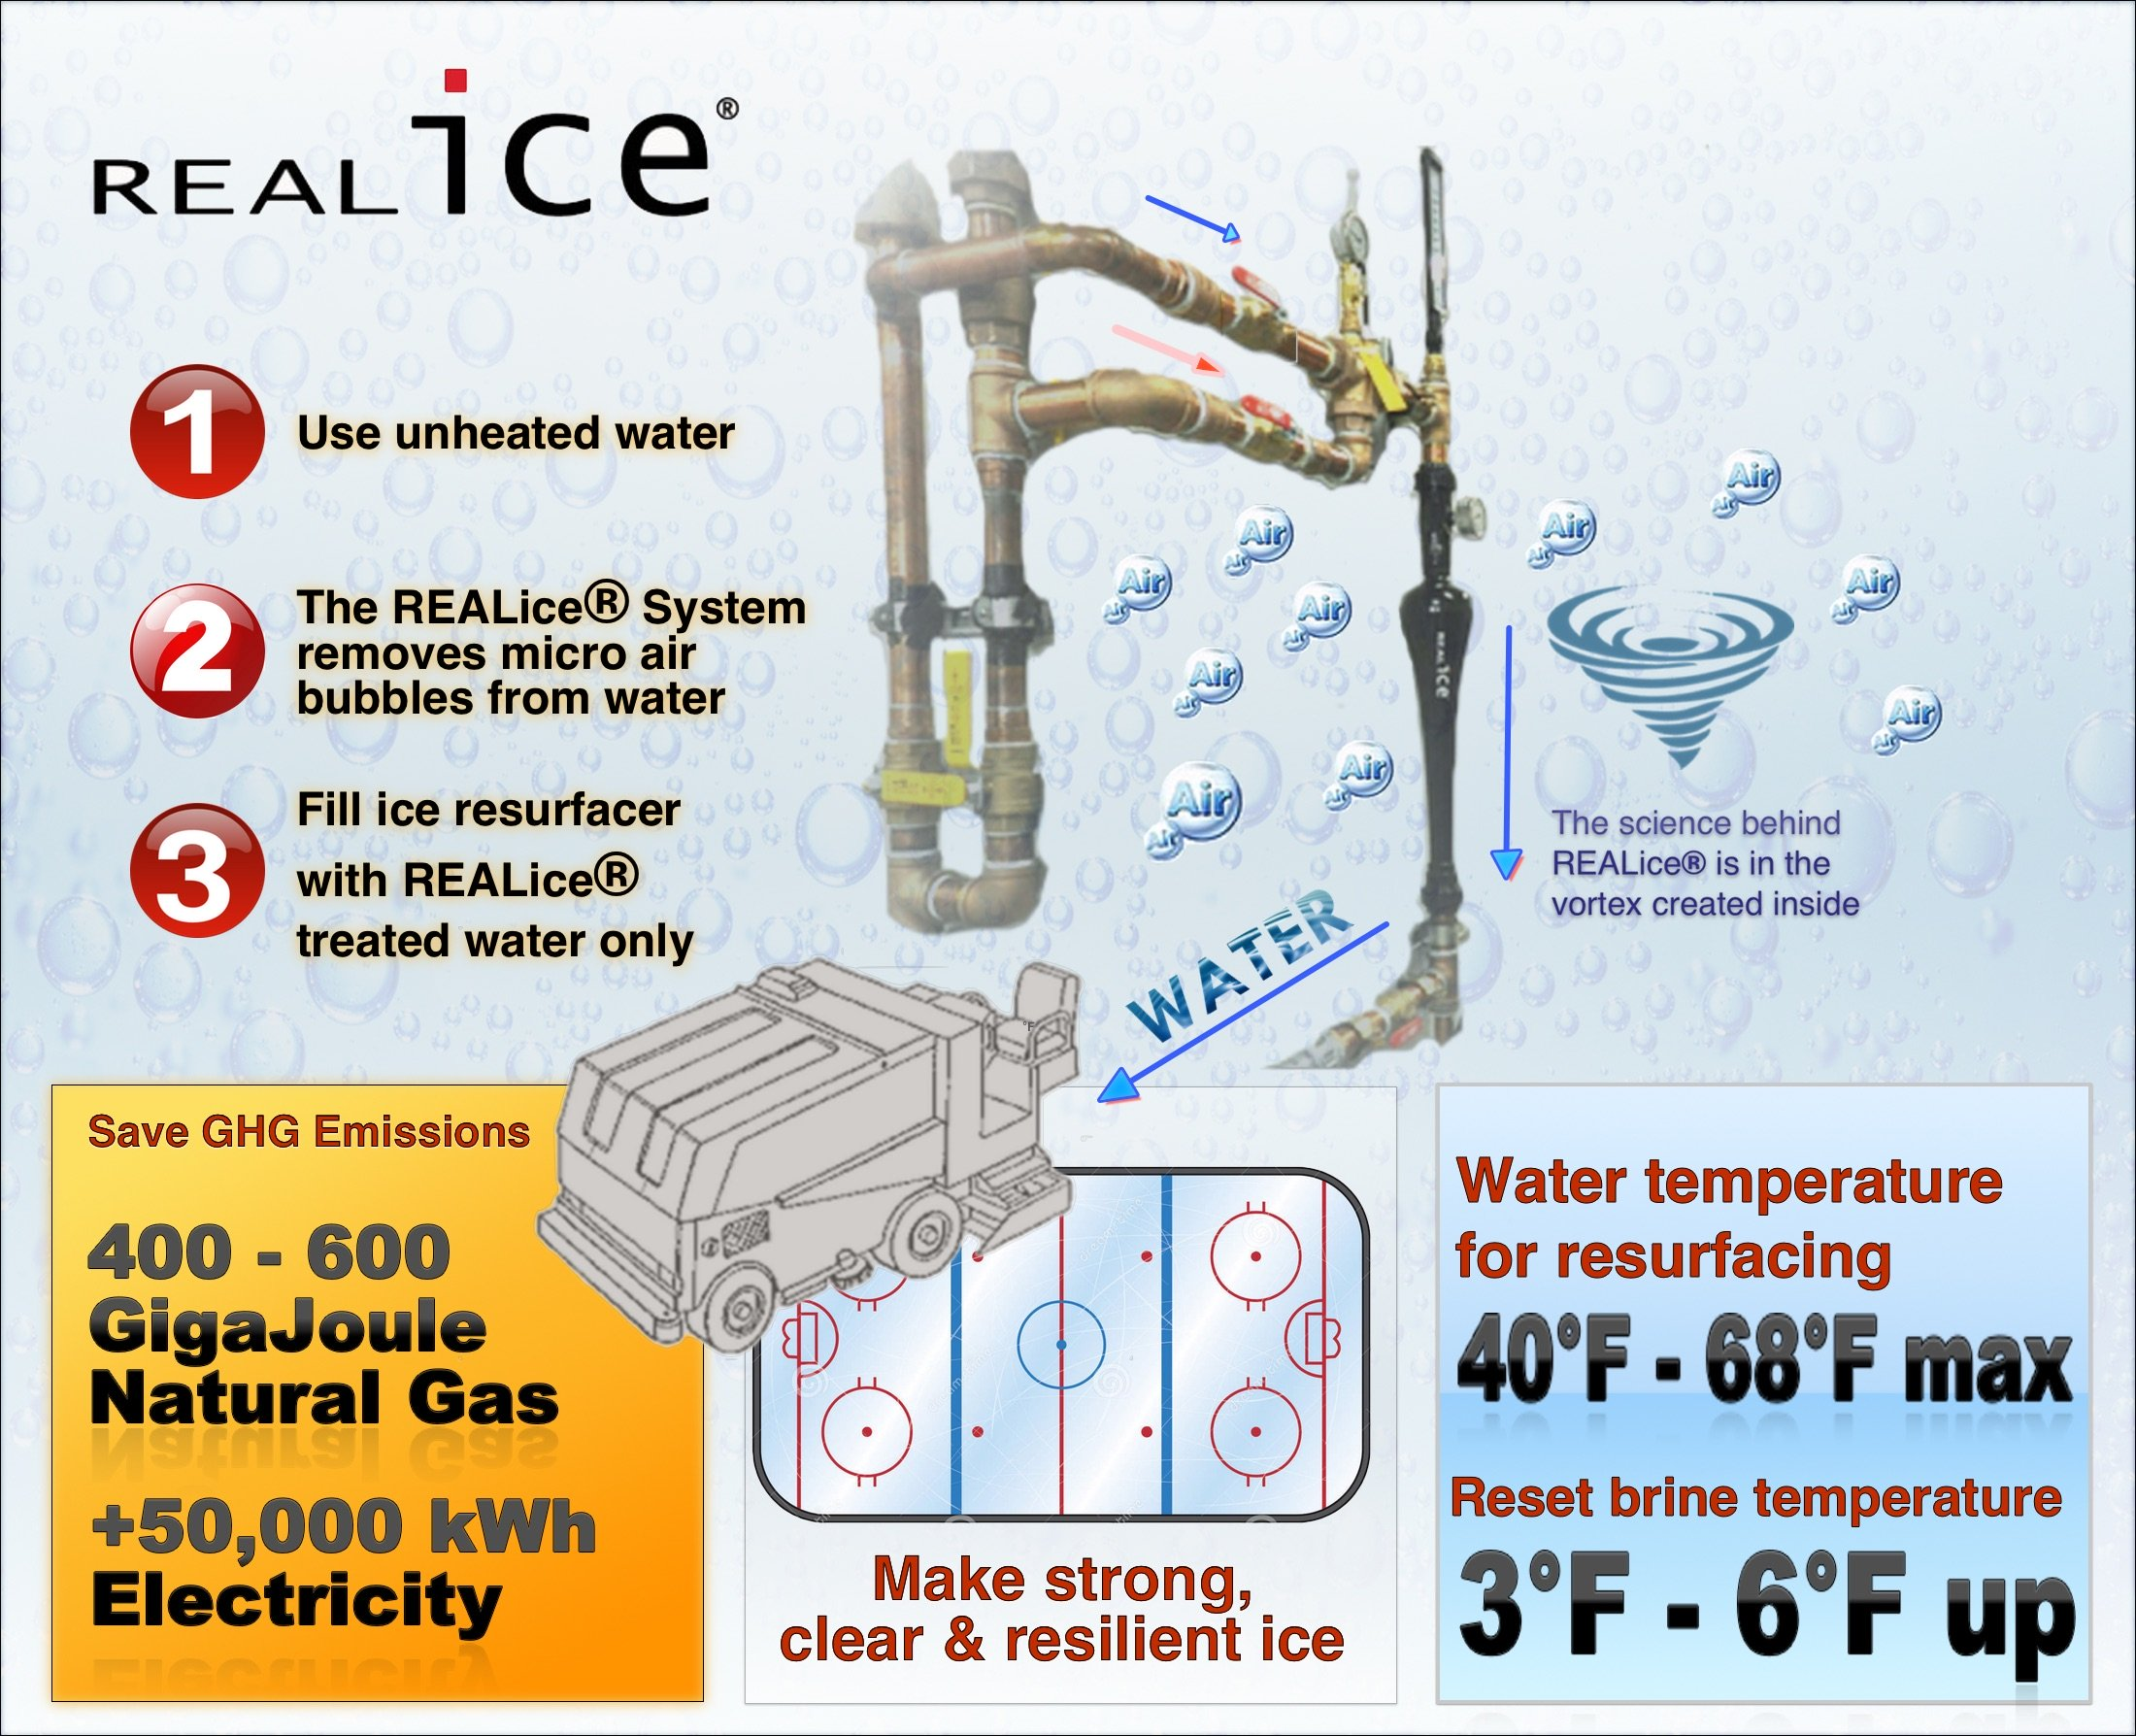 REALice-at-a-glance